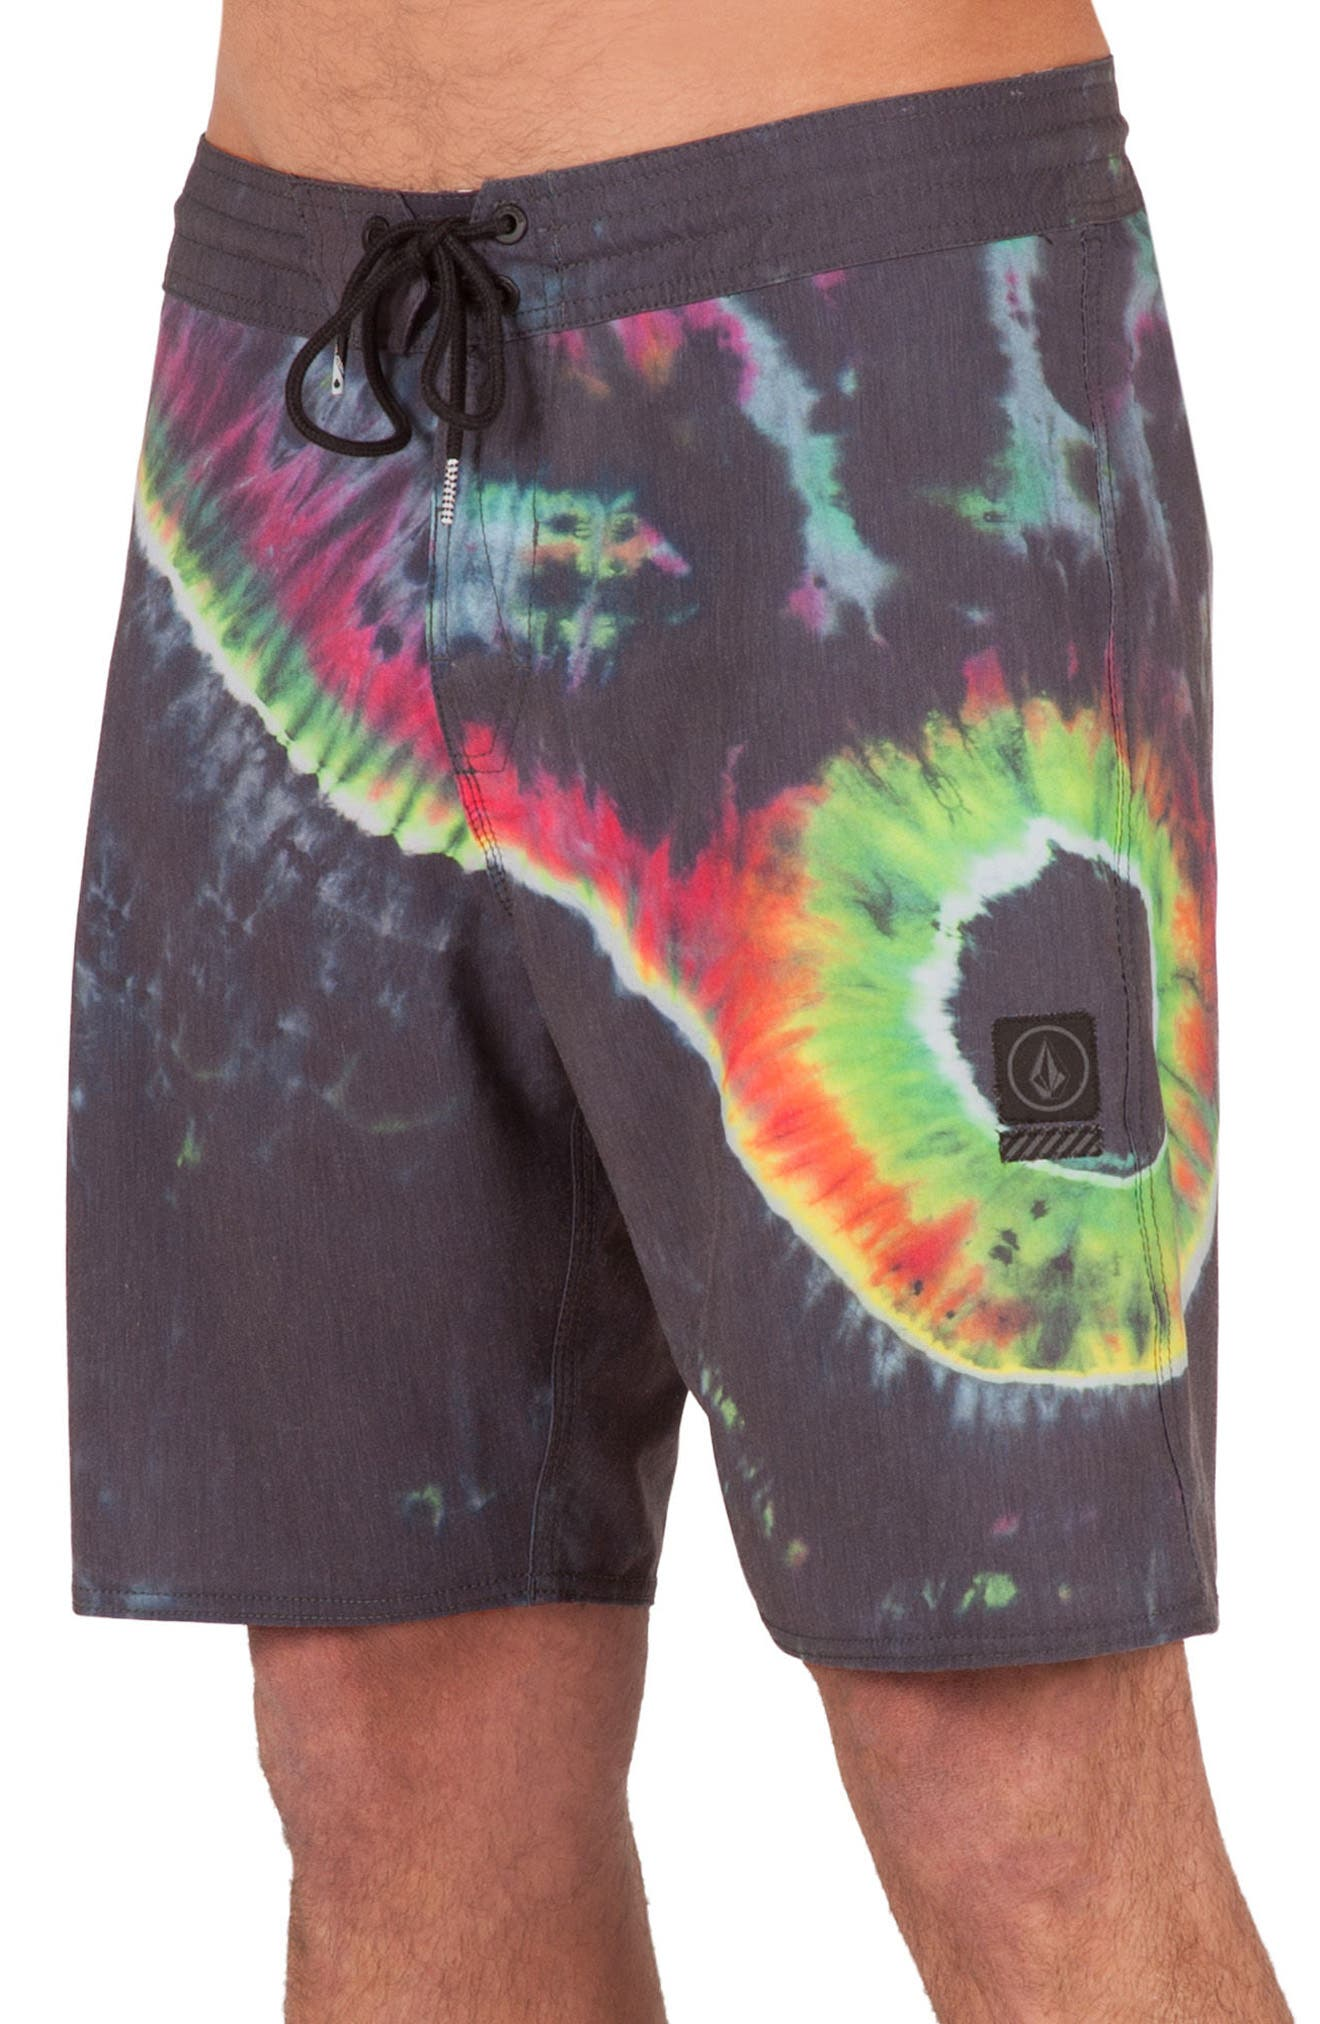 Yin Yang Slinger Board Shorts,                             Alternate thumbnail 3, color,                             002